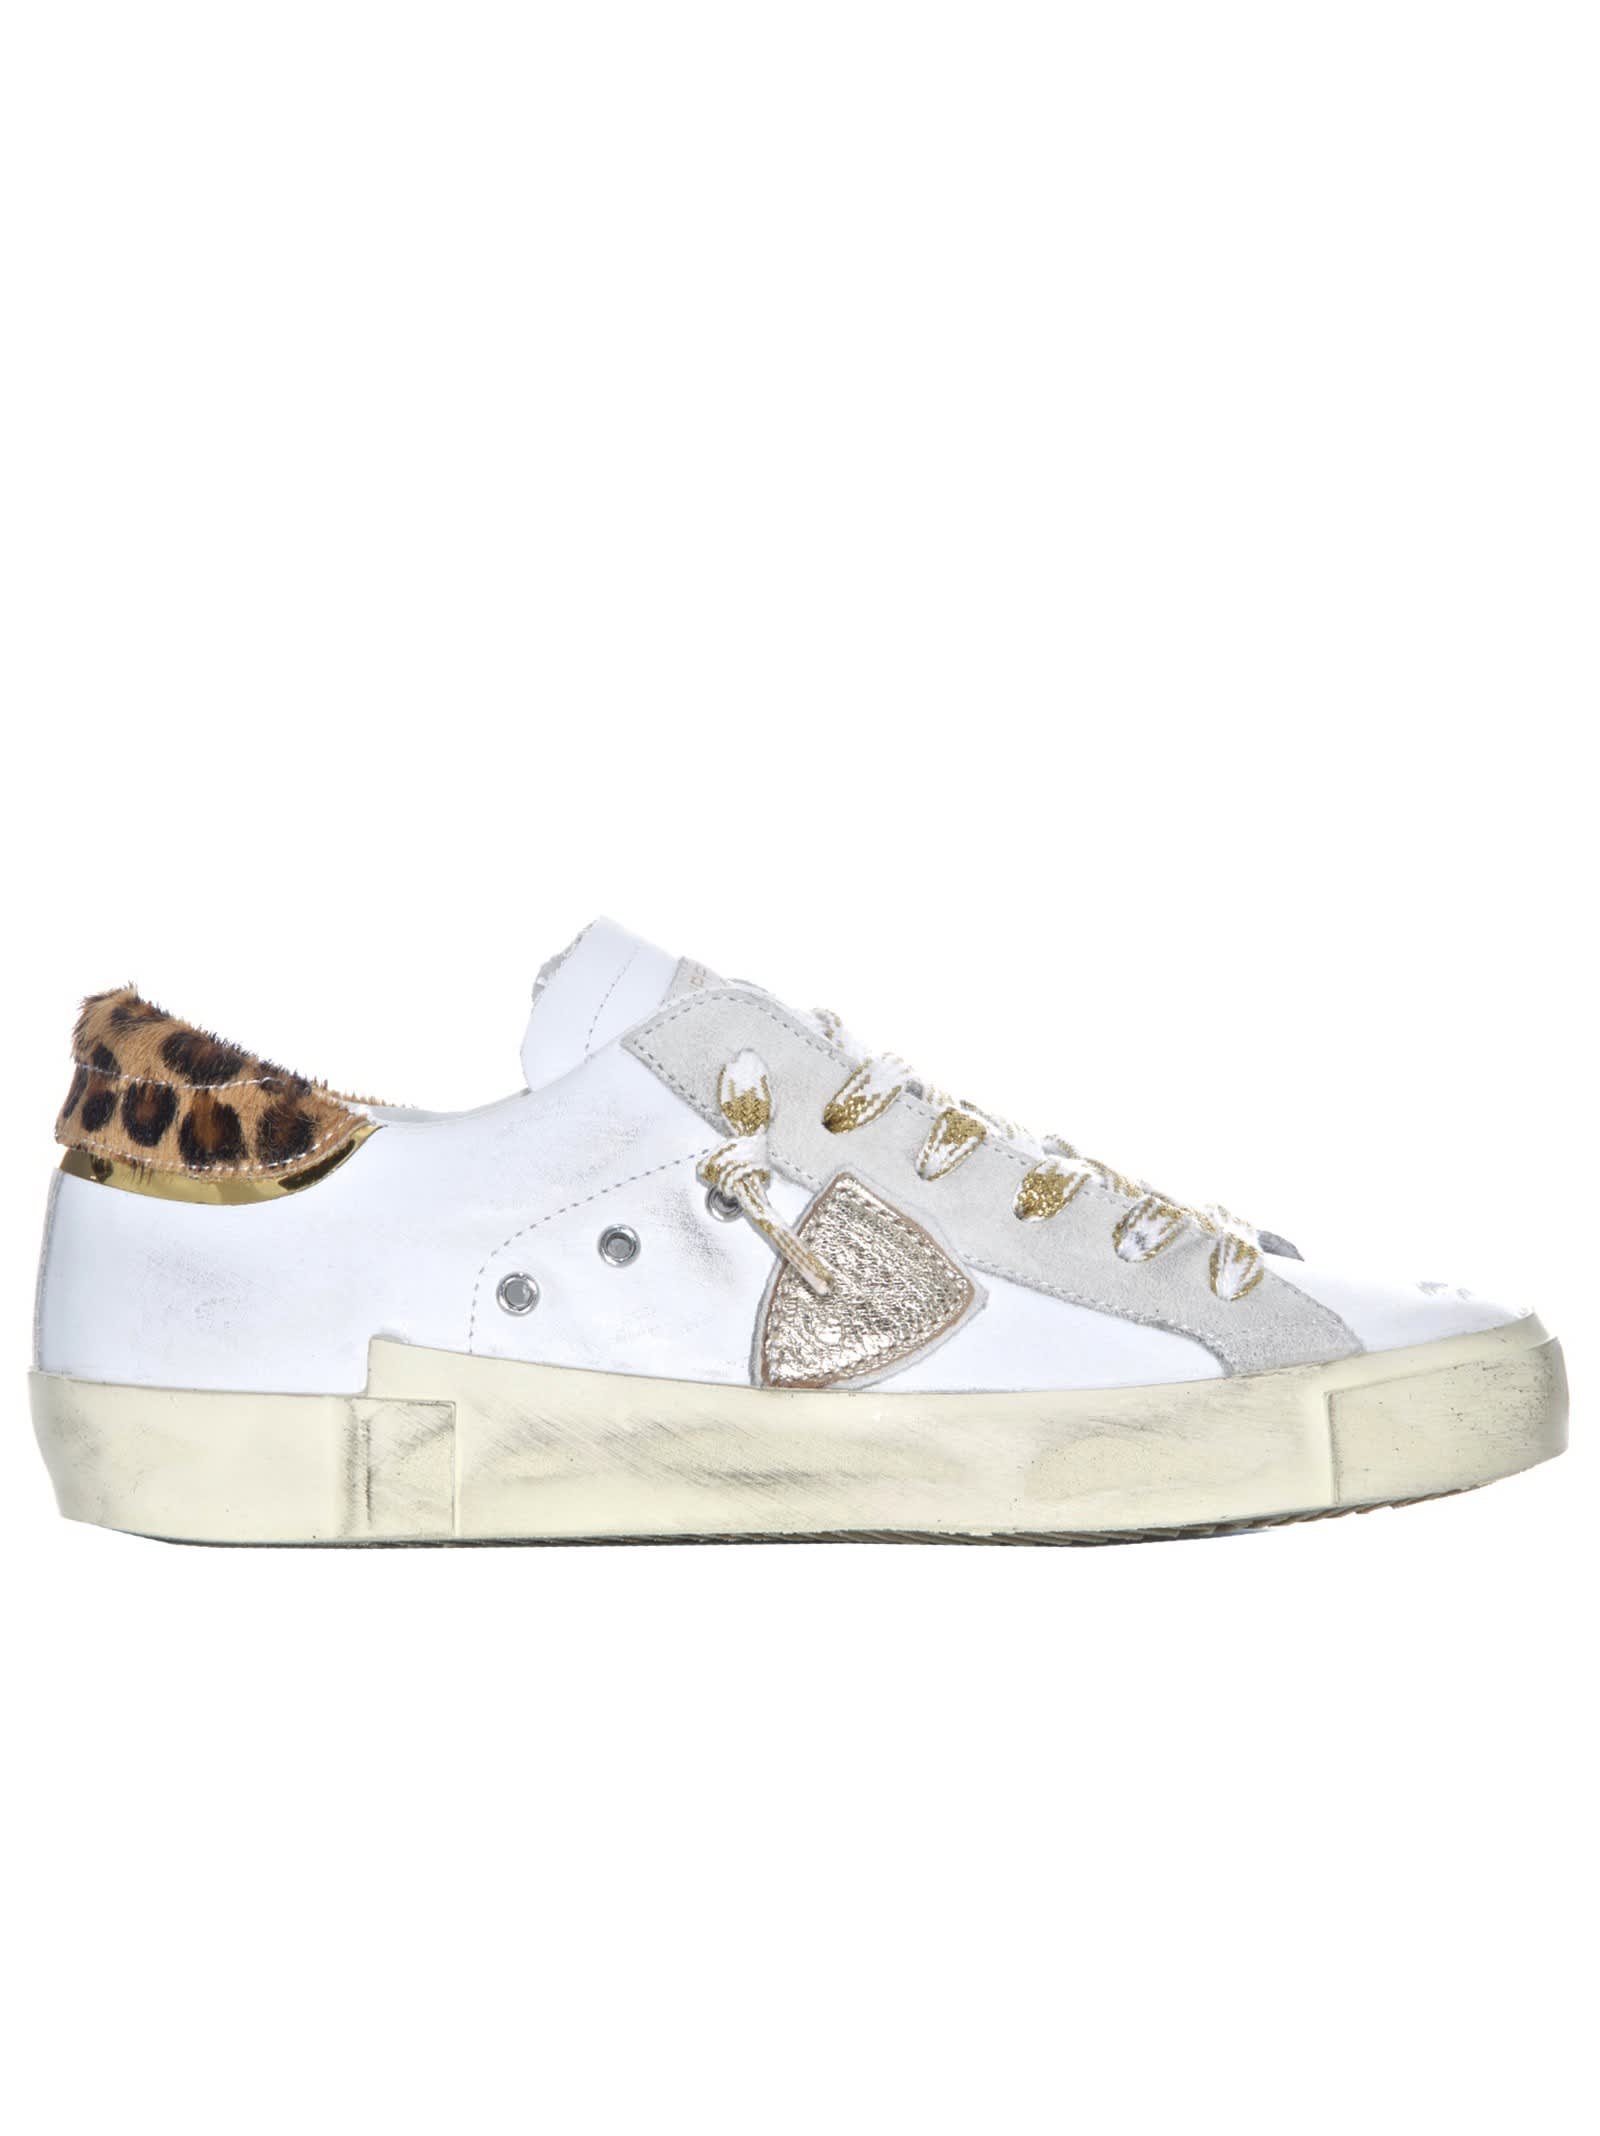 Philippe Model WHITE/LEOPARD LEATHER SNEAKERS